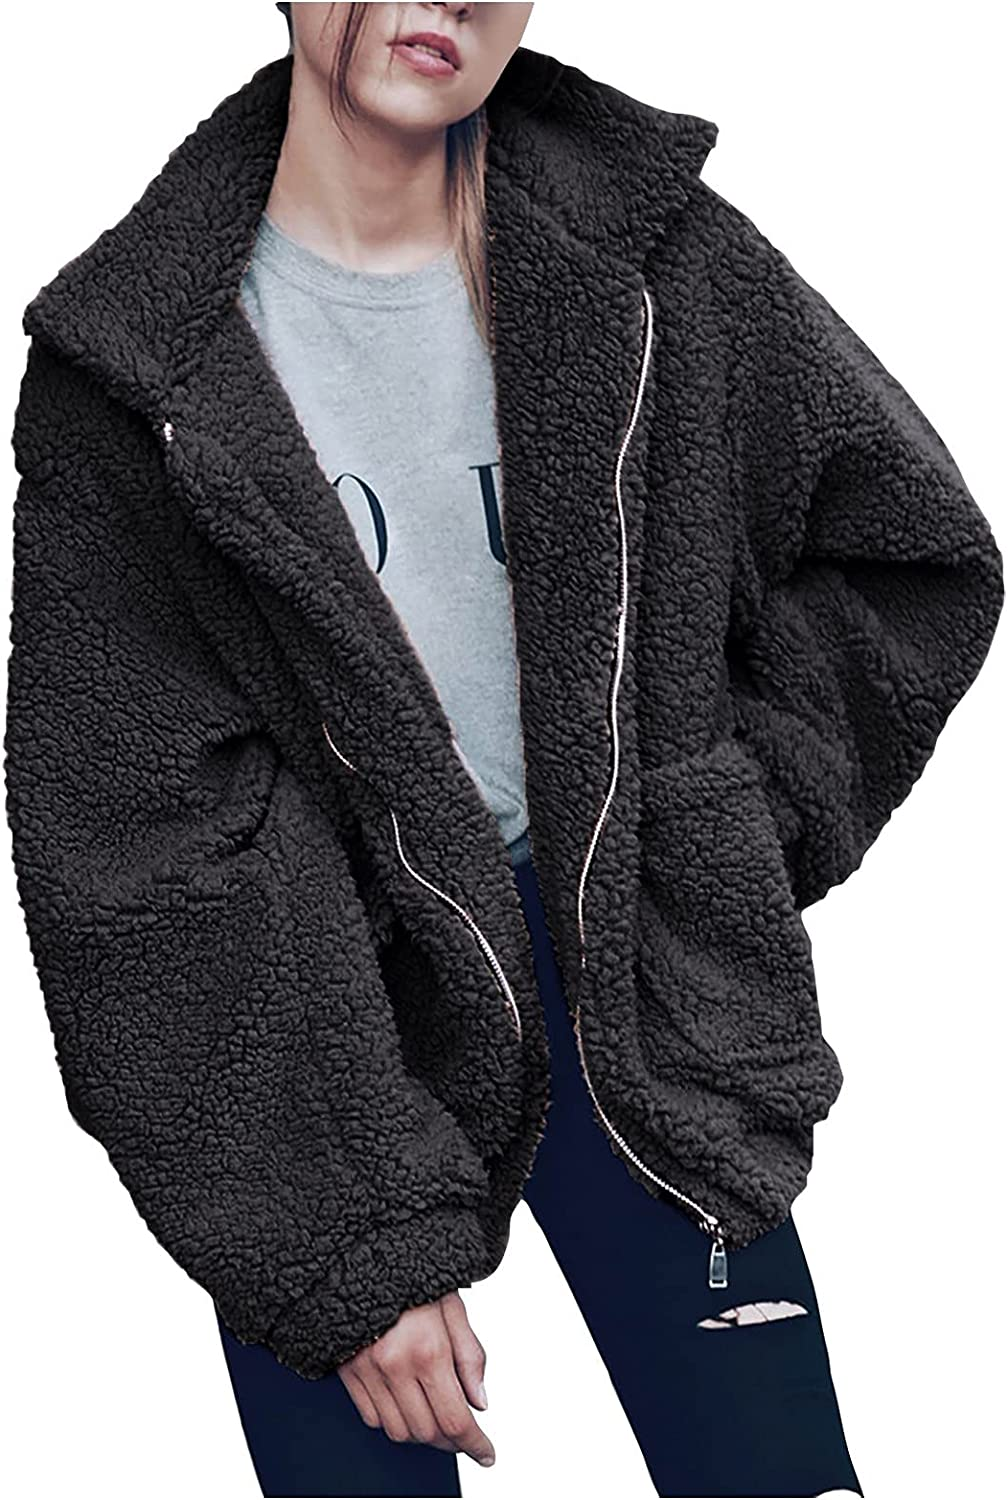 Women Pure Color Plush Coats Lined Loose Puffer Jacket Lapel Warm Outwear With Pockets Lightweight